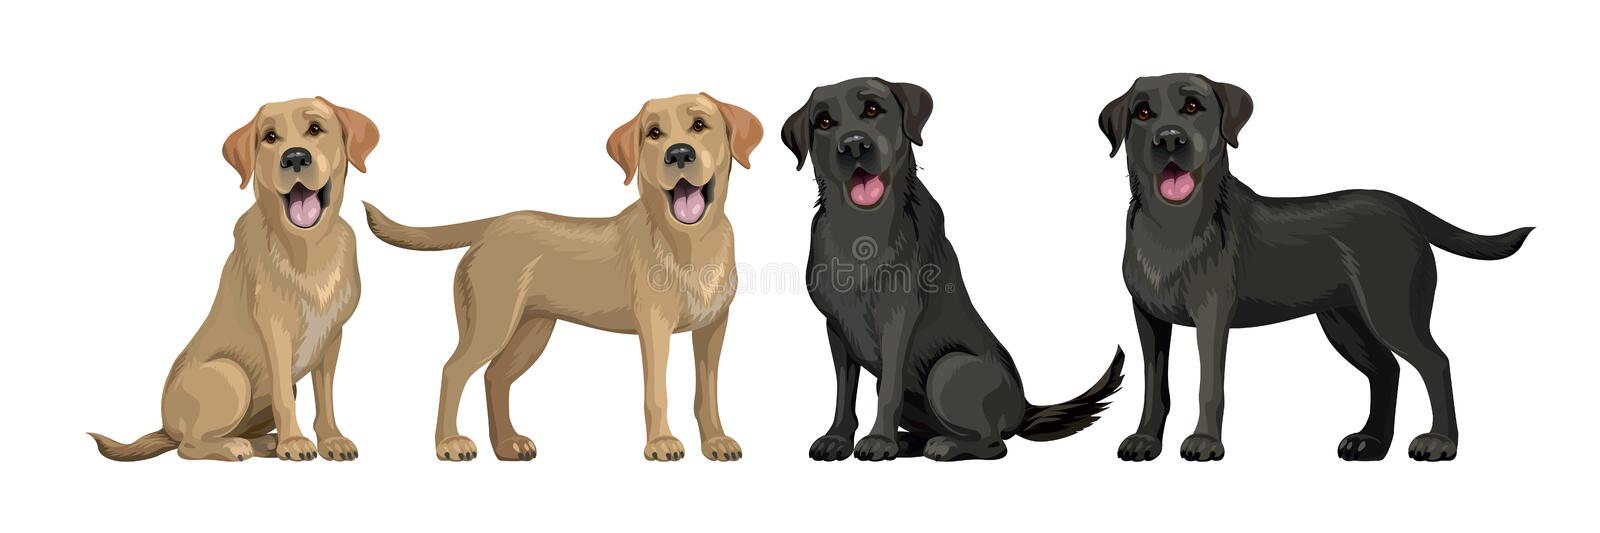 Gold yellow labrador retriever and black labrador retriever. Standing and sitting labradors isolated on white. Young and stock illustration